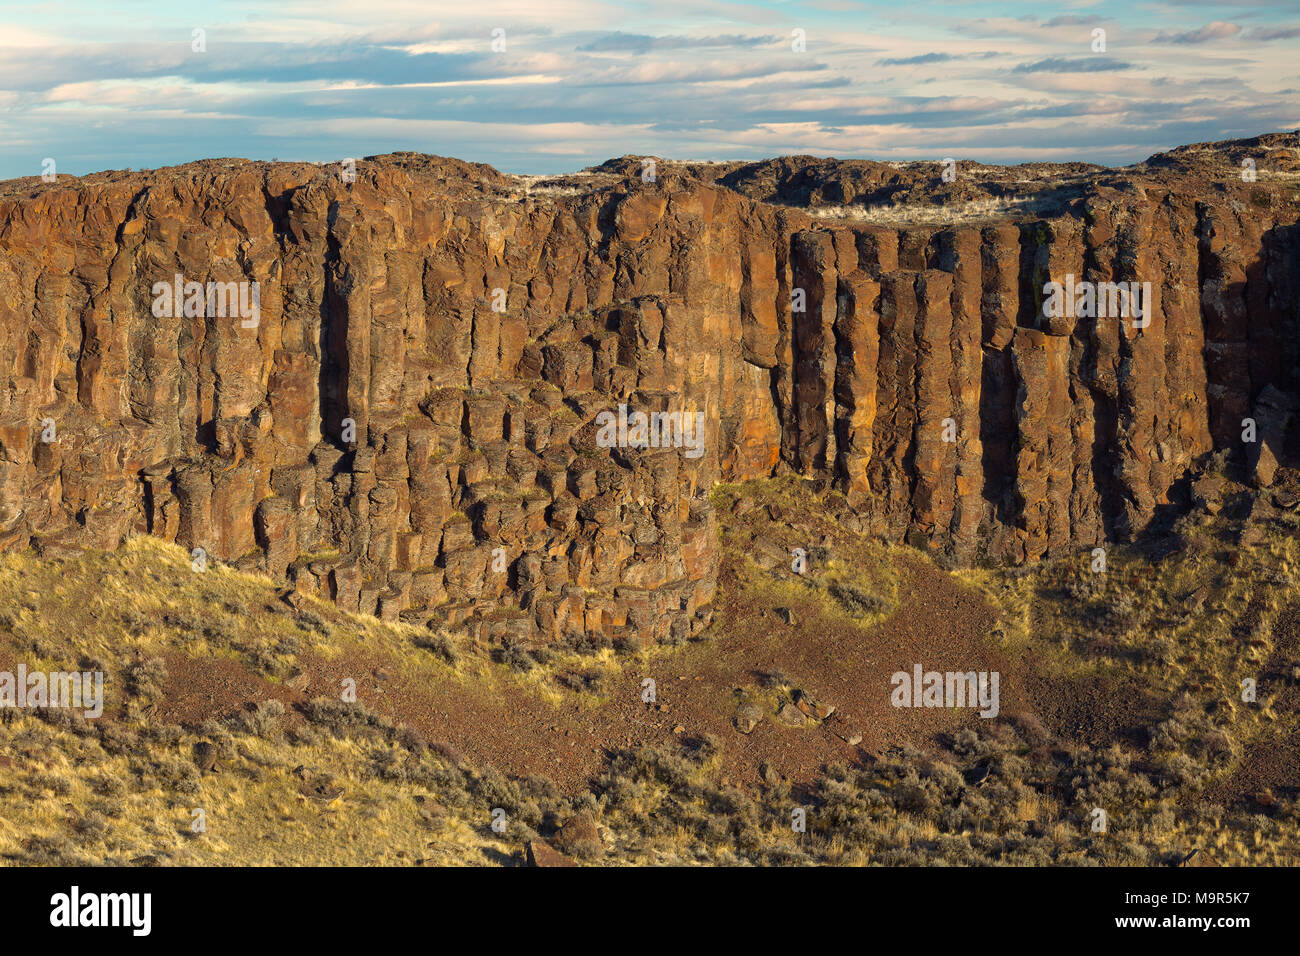 Basalt Columns of Frenchman Coulee, Central Washington State - Stock Image